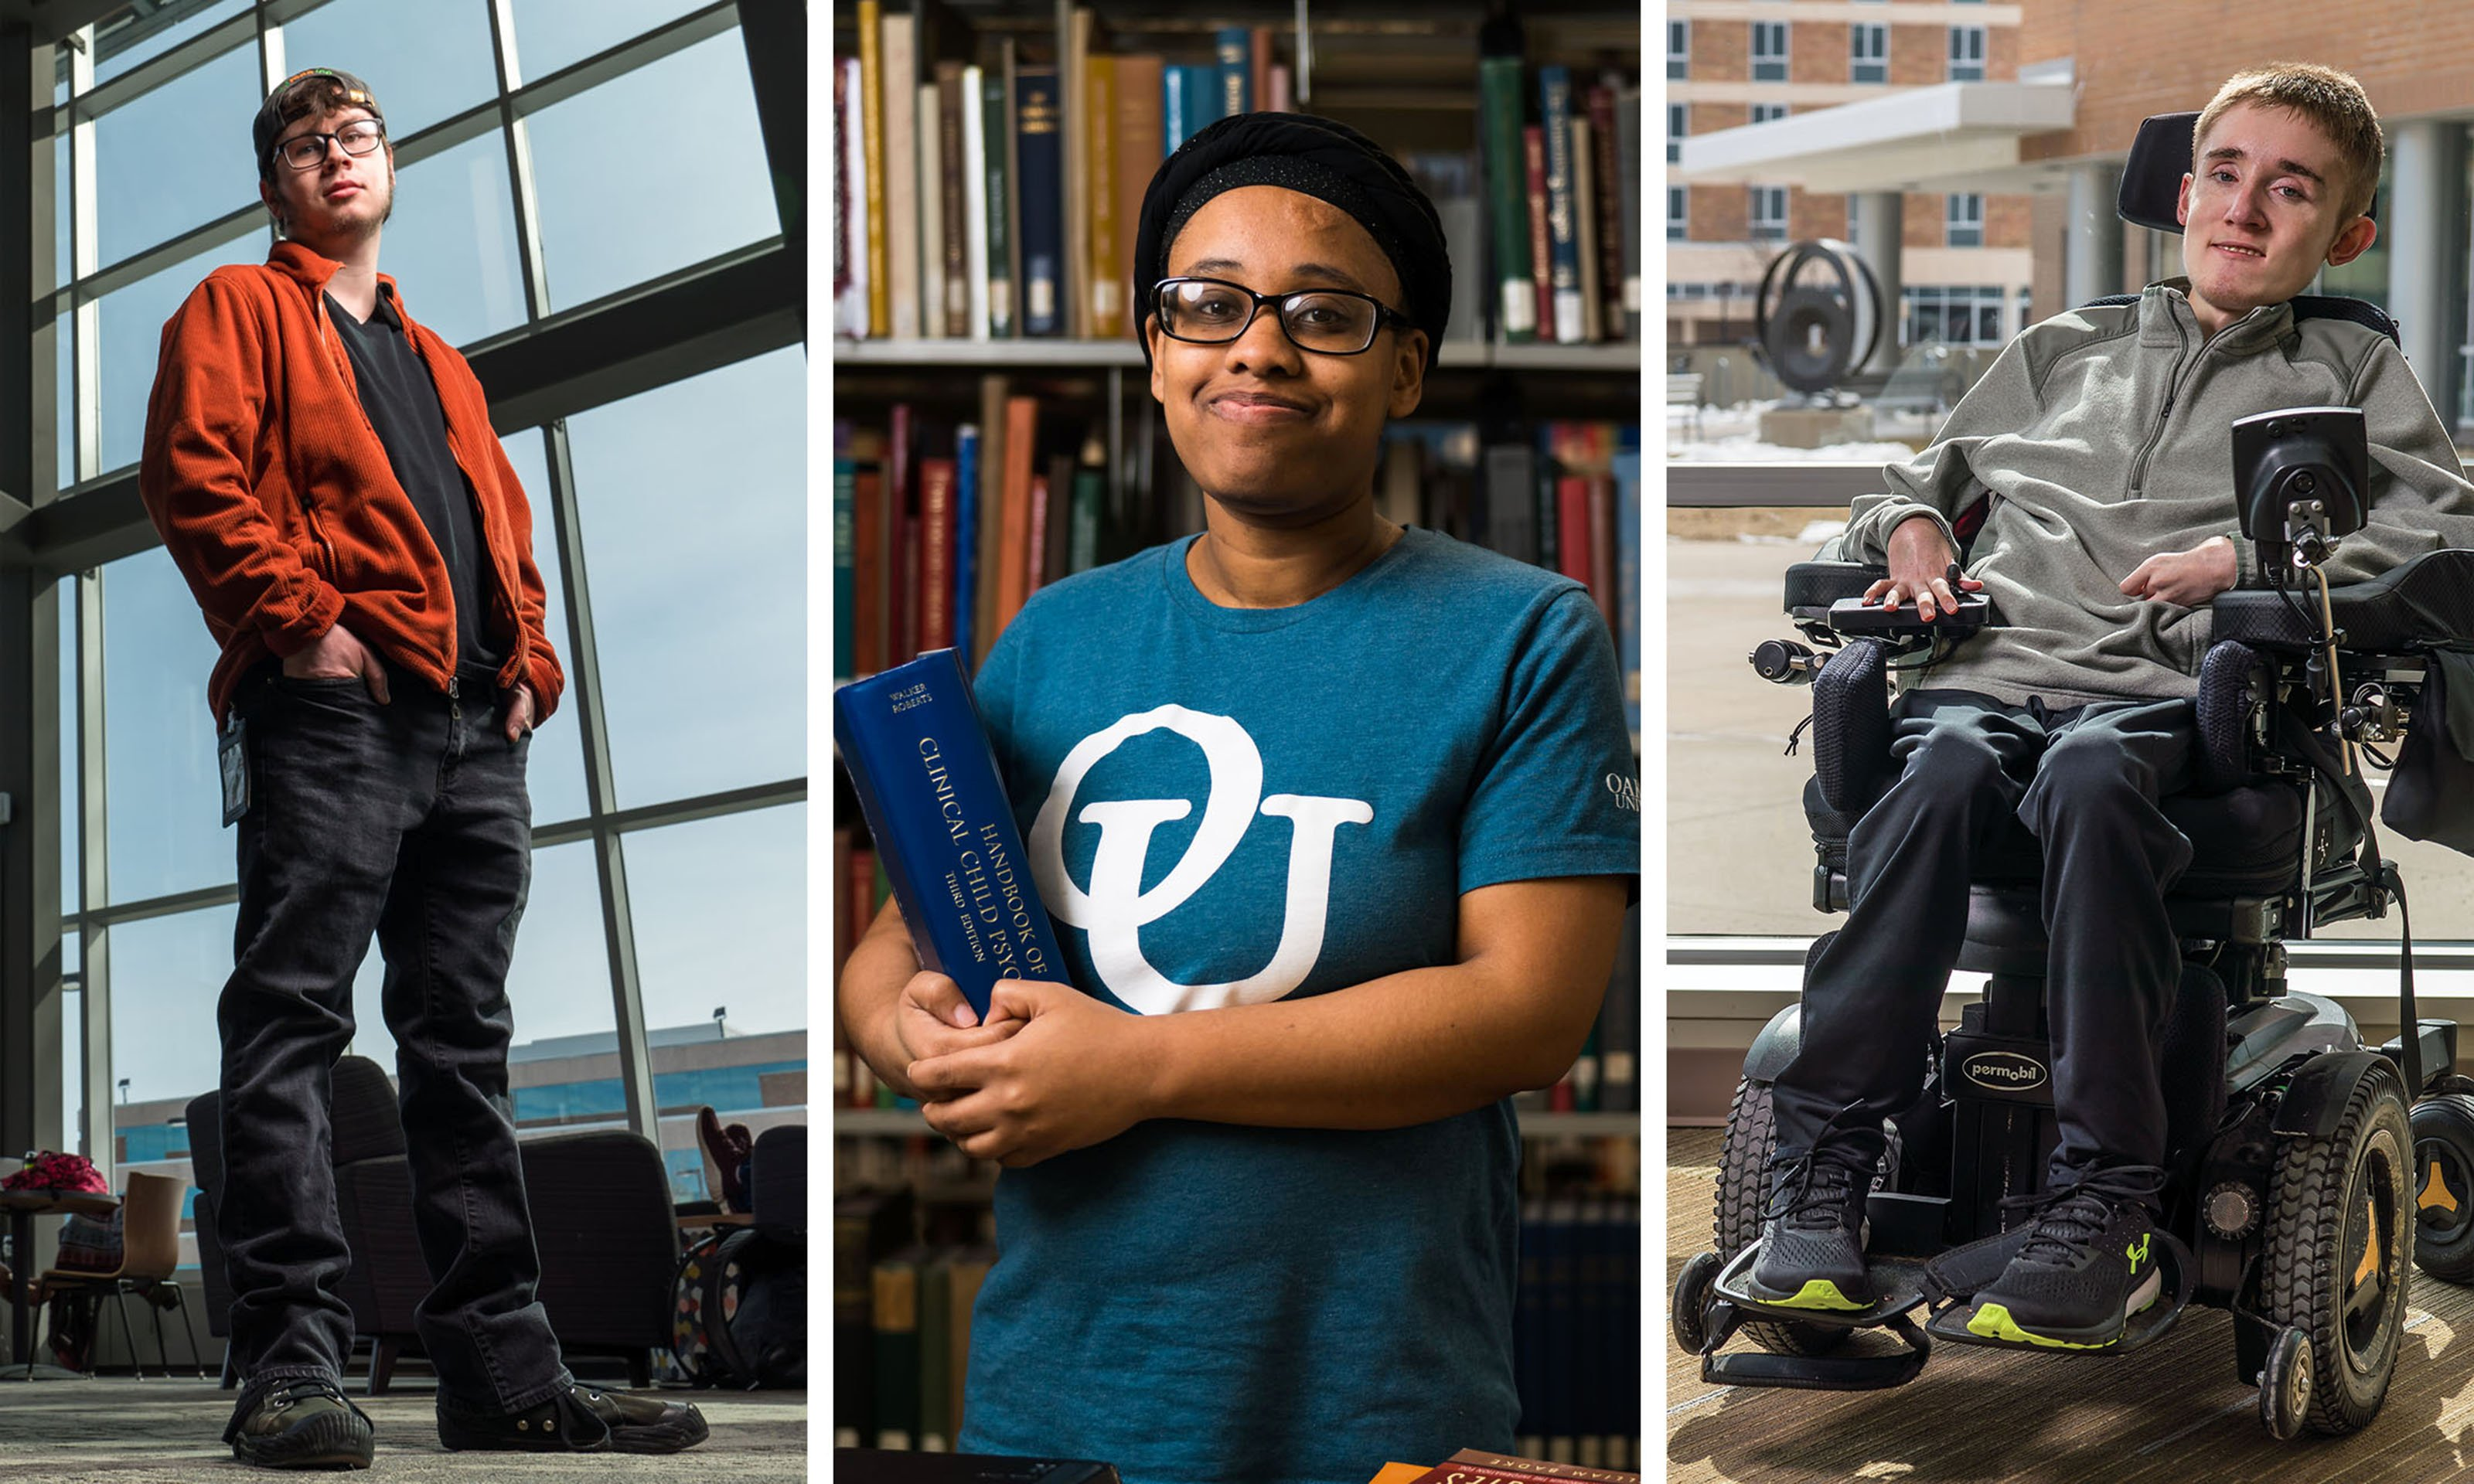 three photos, left to right: male standing, female holding books, male in wheelchair